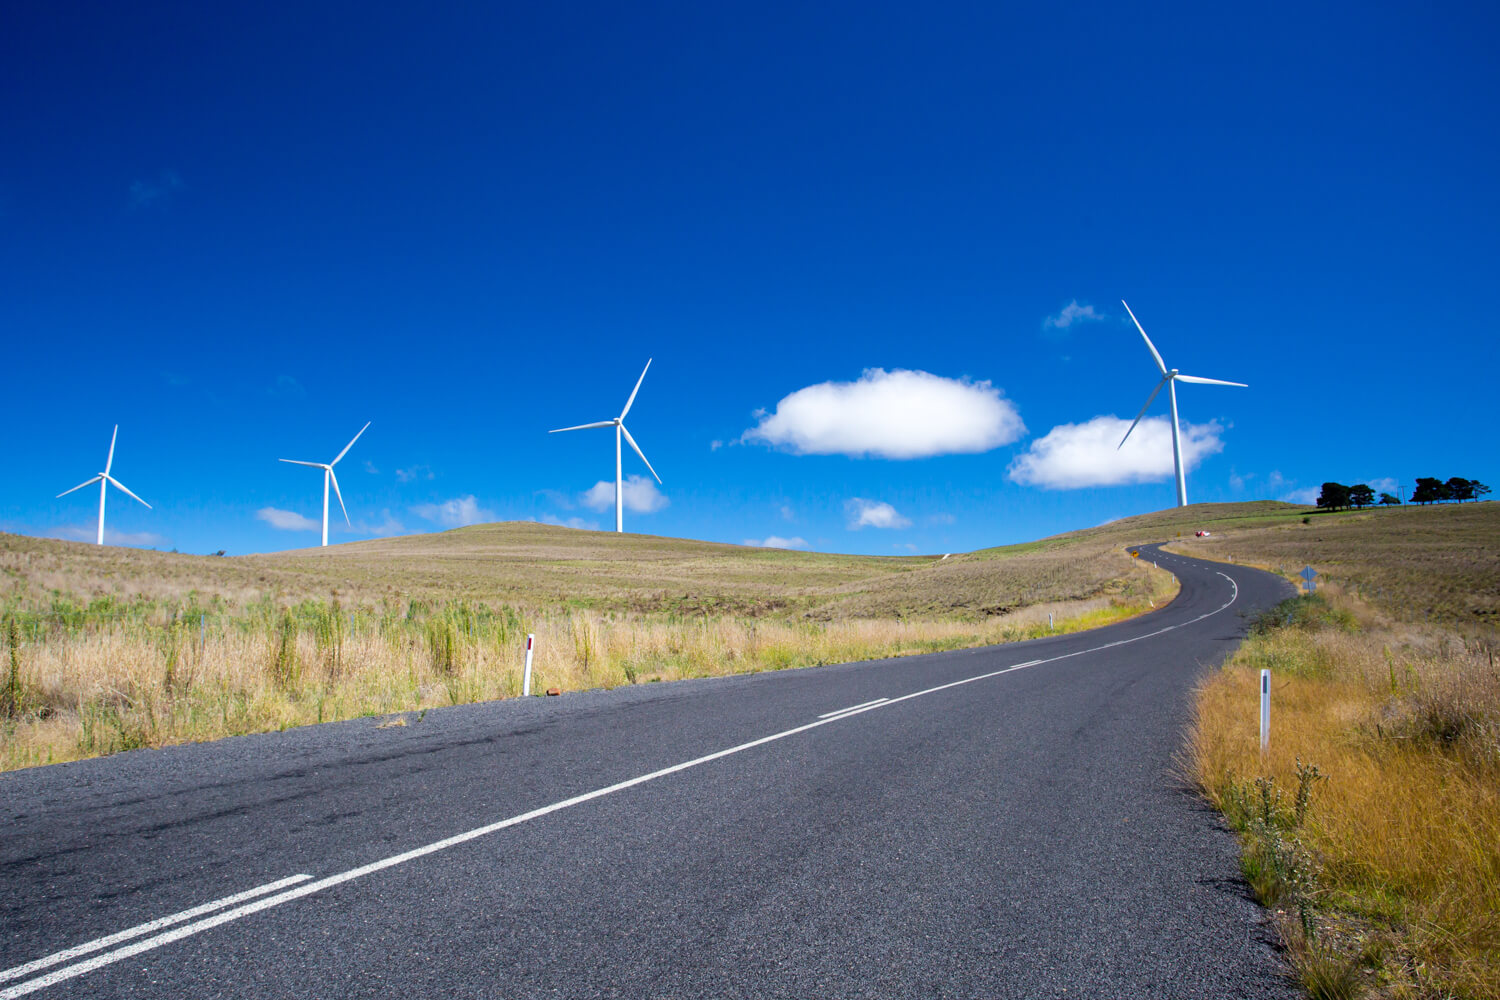 Road with wind turbines. Environmental impact assessments and approvals.